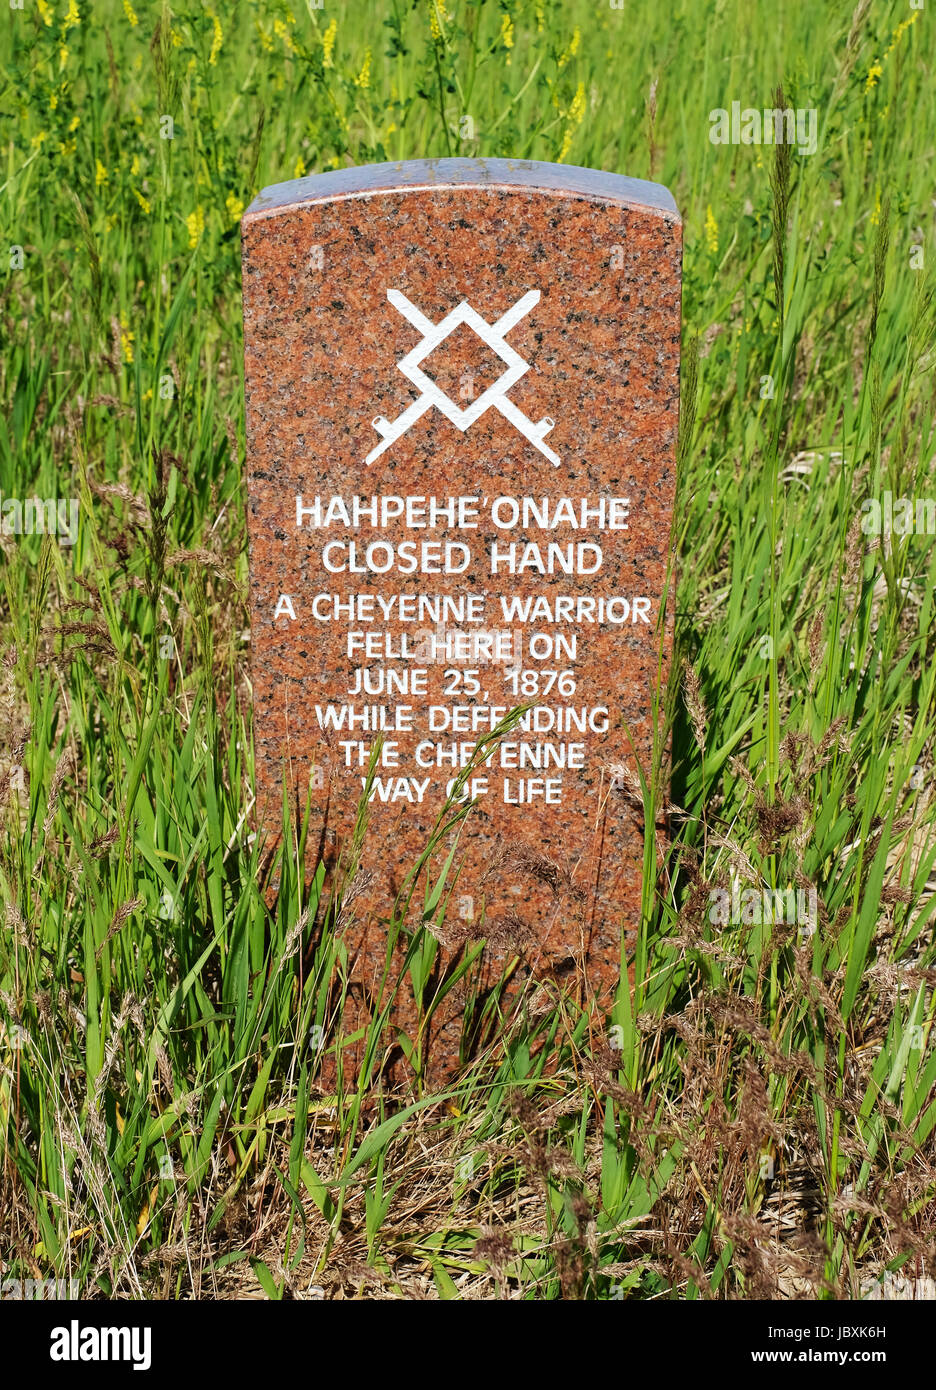 """A head stone marks the spot where Cheyenne Warrior """"Hahpehe Onahe"""" """"Closed Hand"""" fell during the battle of Little Bighorn, Montana, in 1876. Stock Photo"""